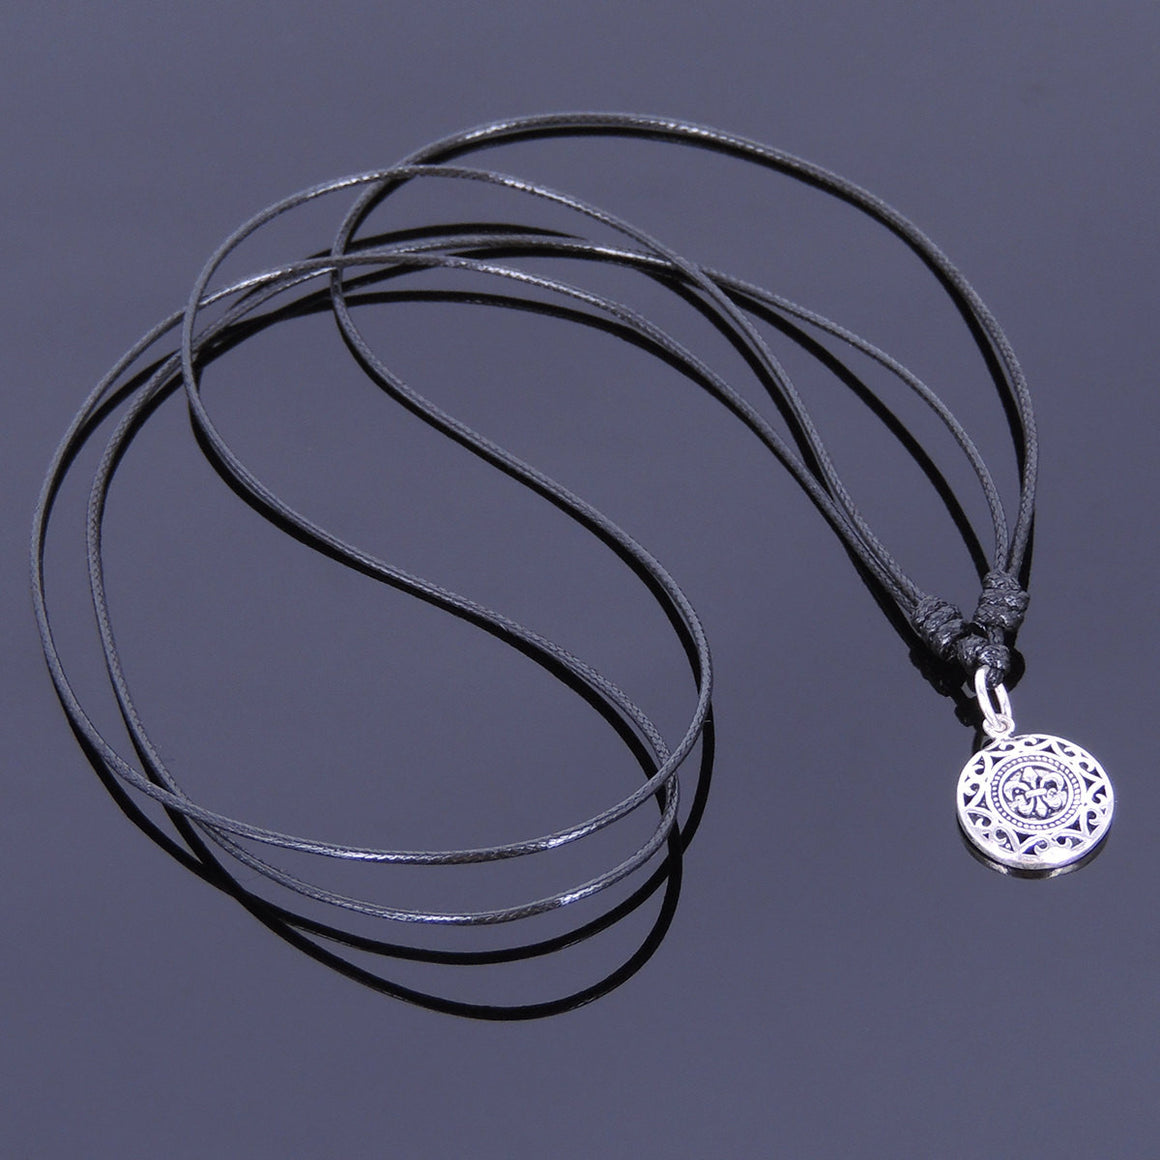 Adjustable Wax Rope Necklace with S925 Sterling Silver Fleur De Lis Mandala Pendant - Handmade by Gem & Silver NK008